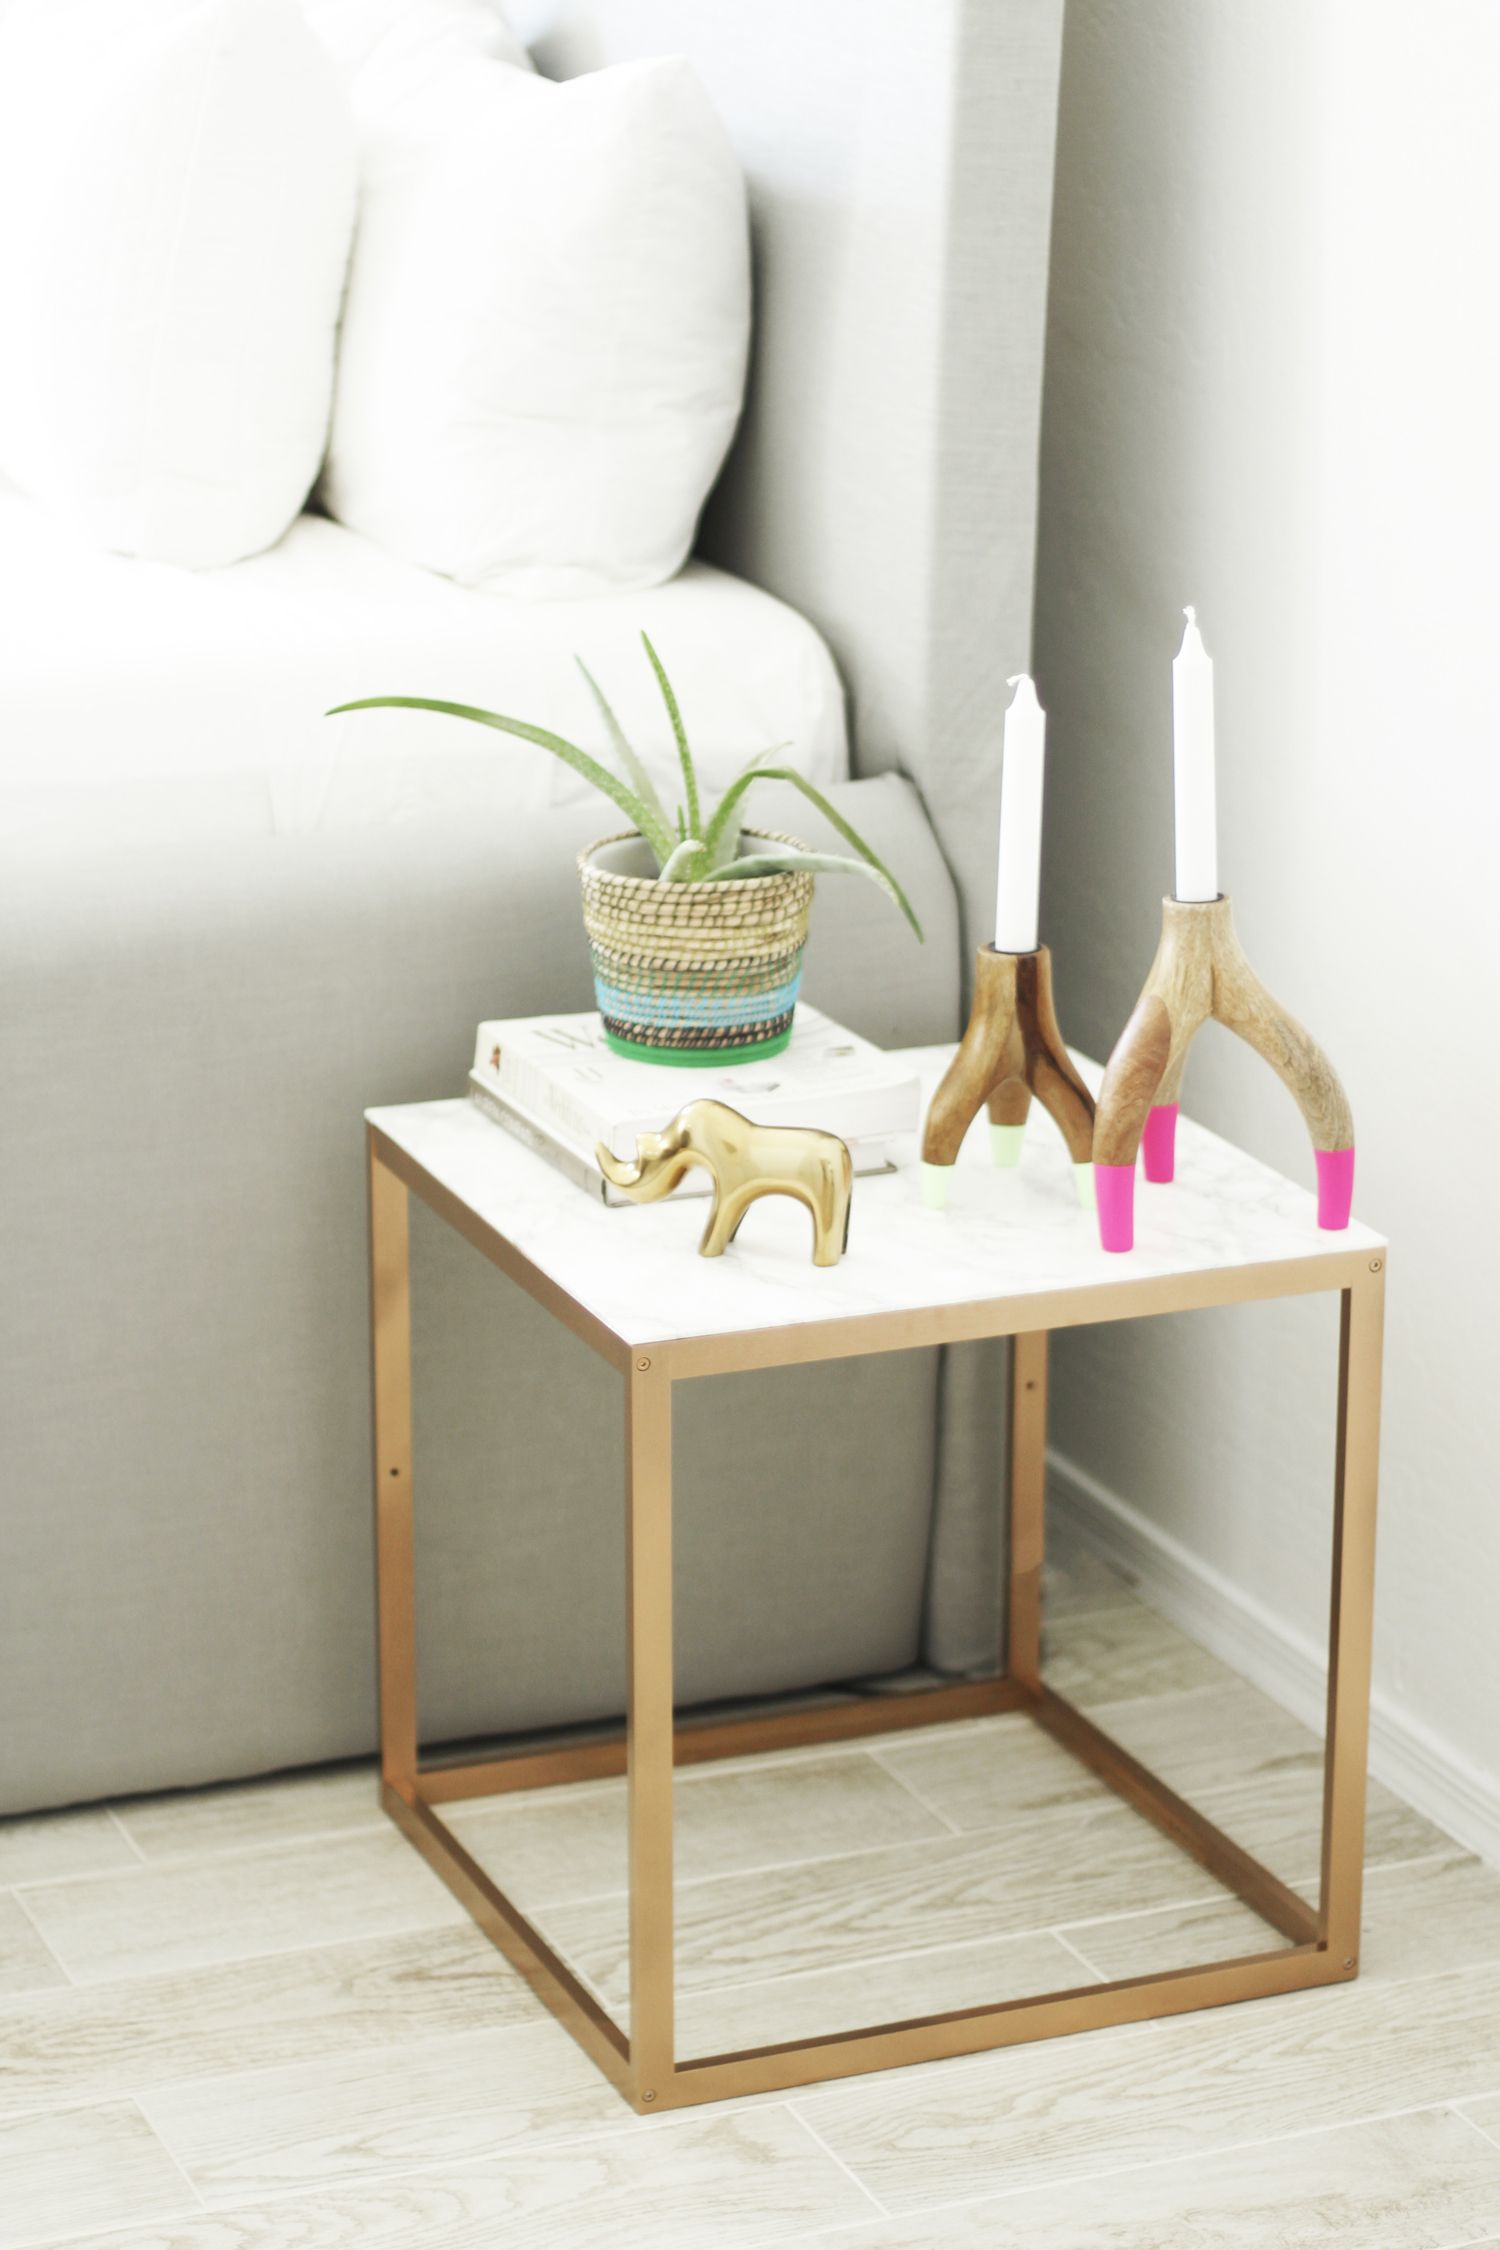 Ikea Hacks 50 Nightstands And End Tables Diy Marble Table Ikea